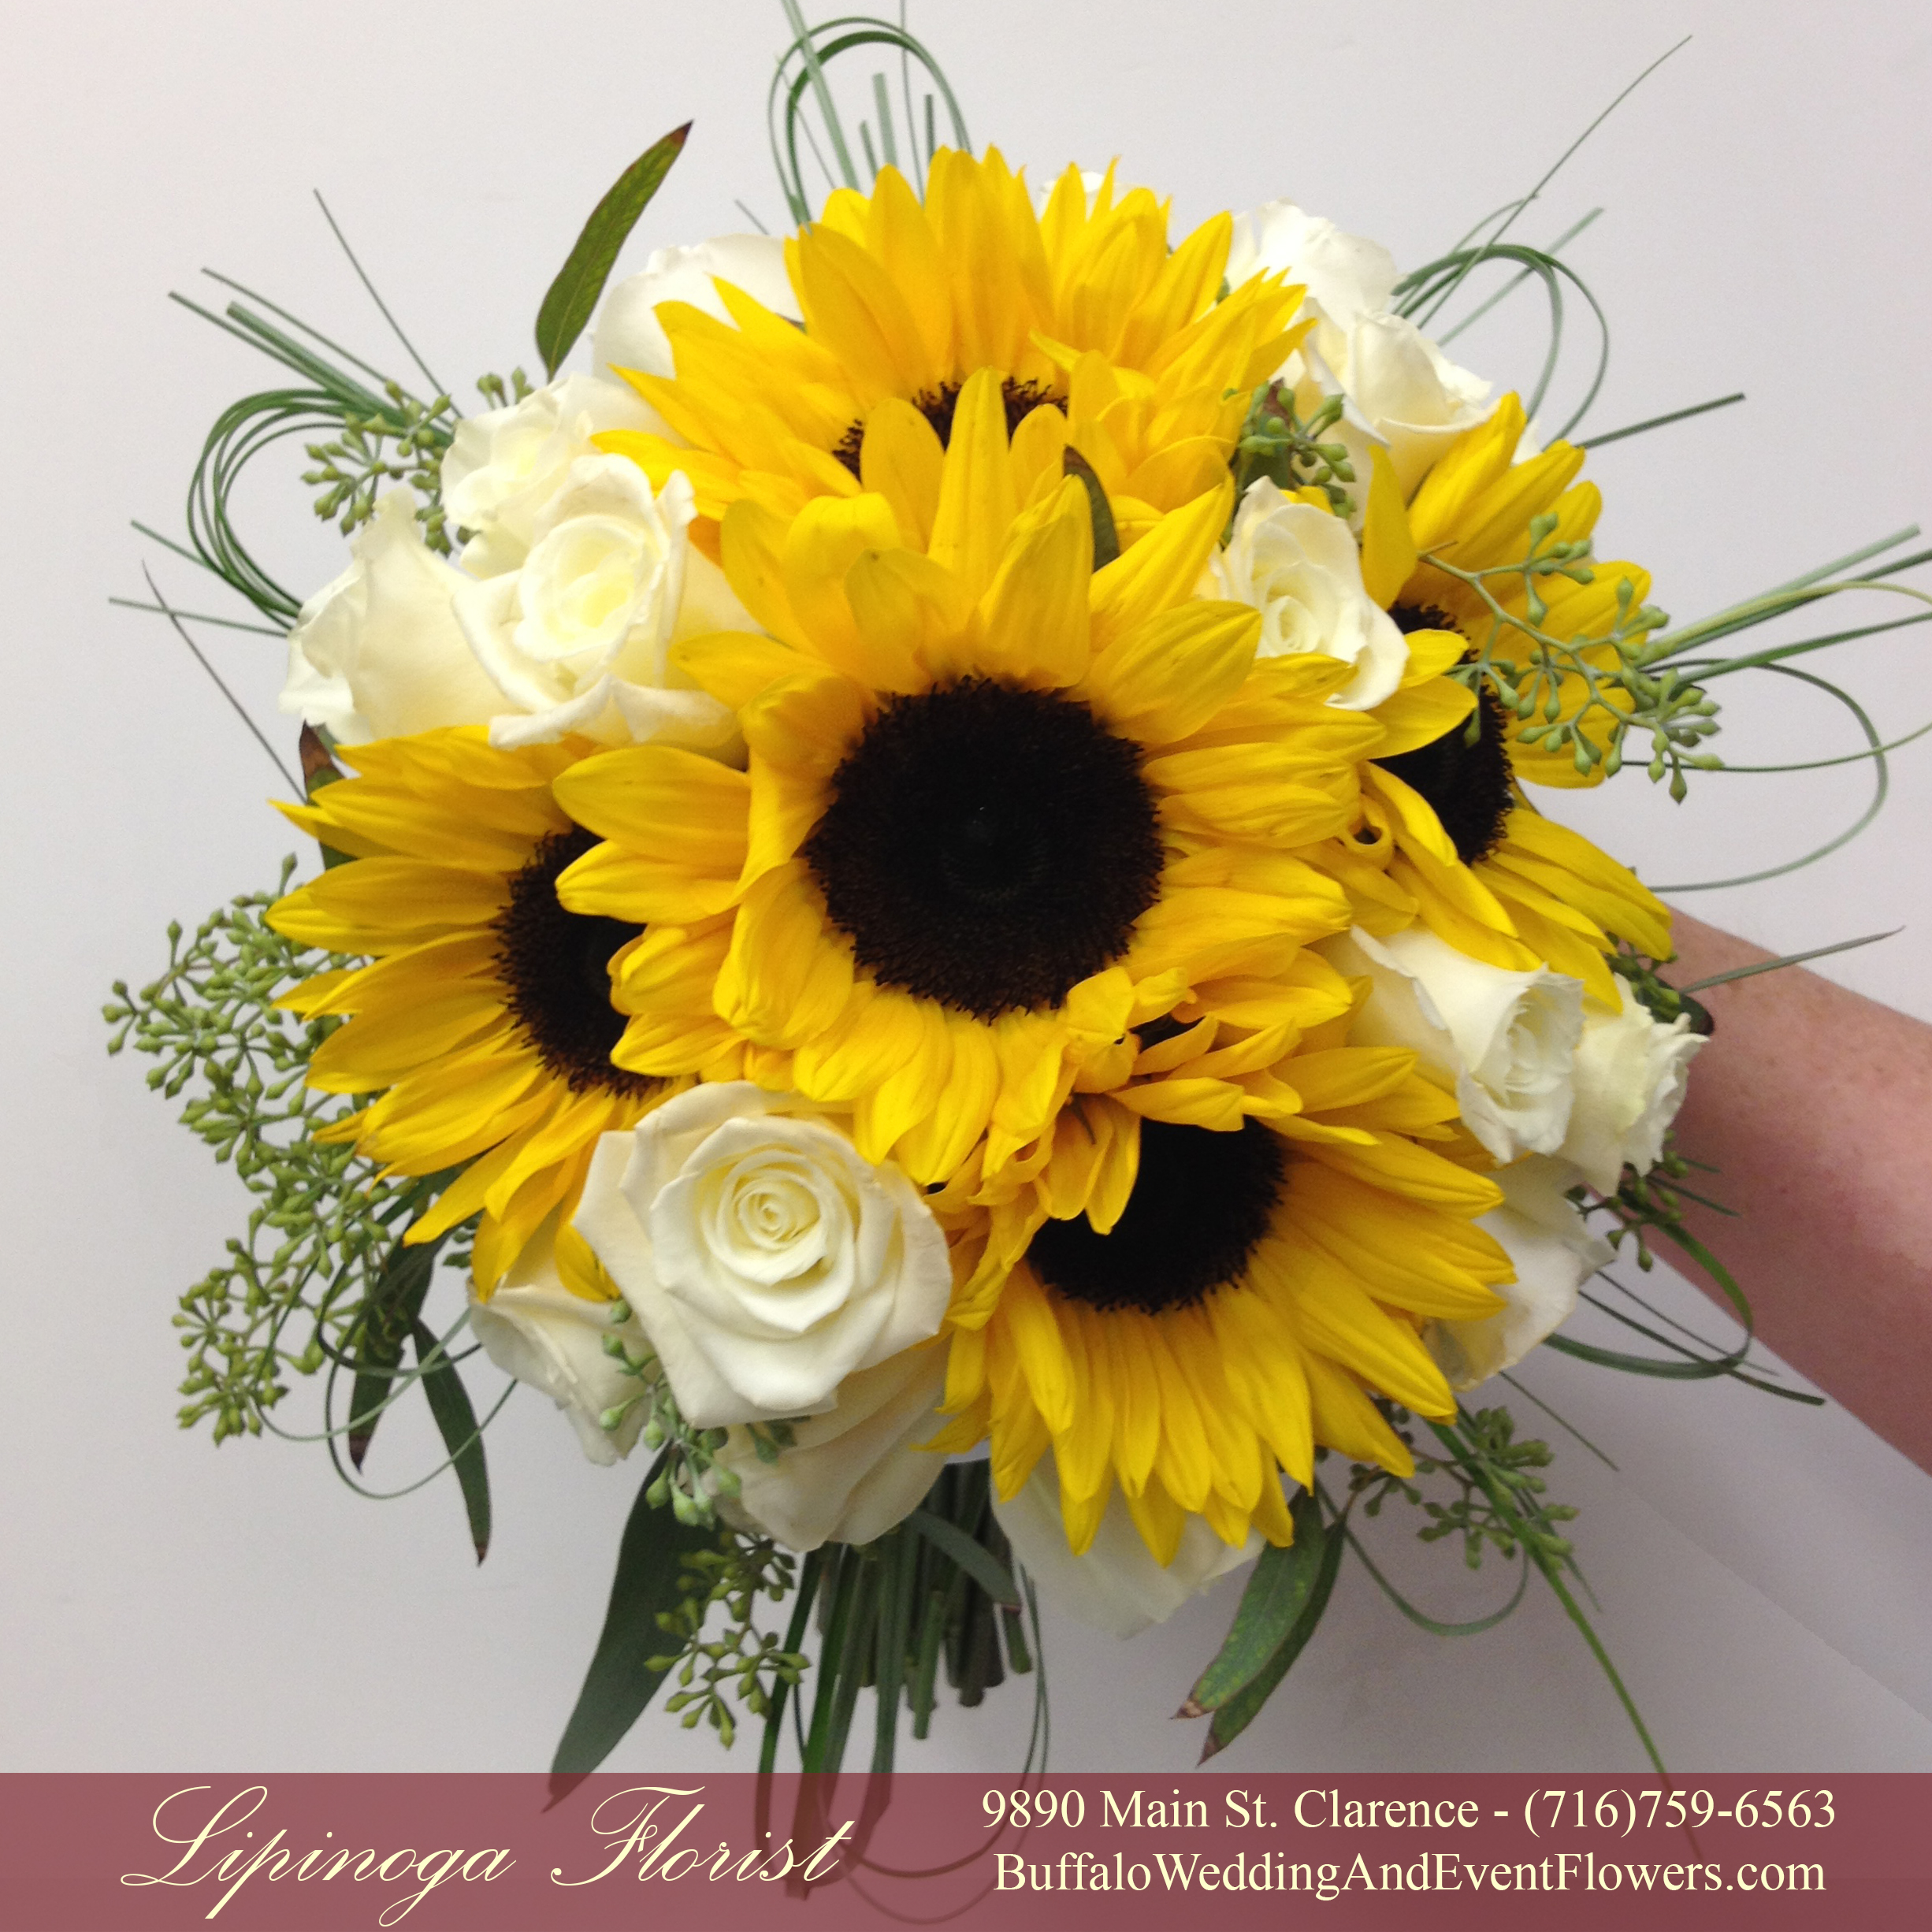 Sunflower bridal bouquet buffalo wedding event flowers by wedding flowers buffalo ny junglespirit Images